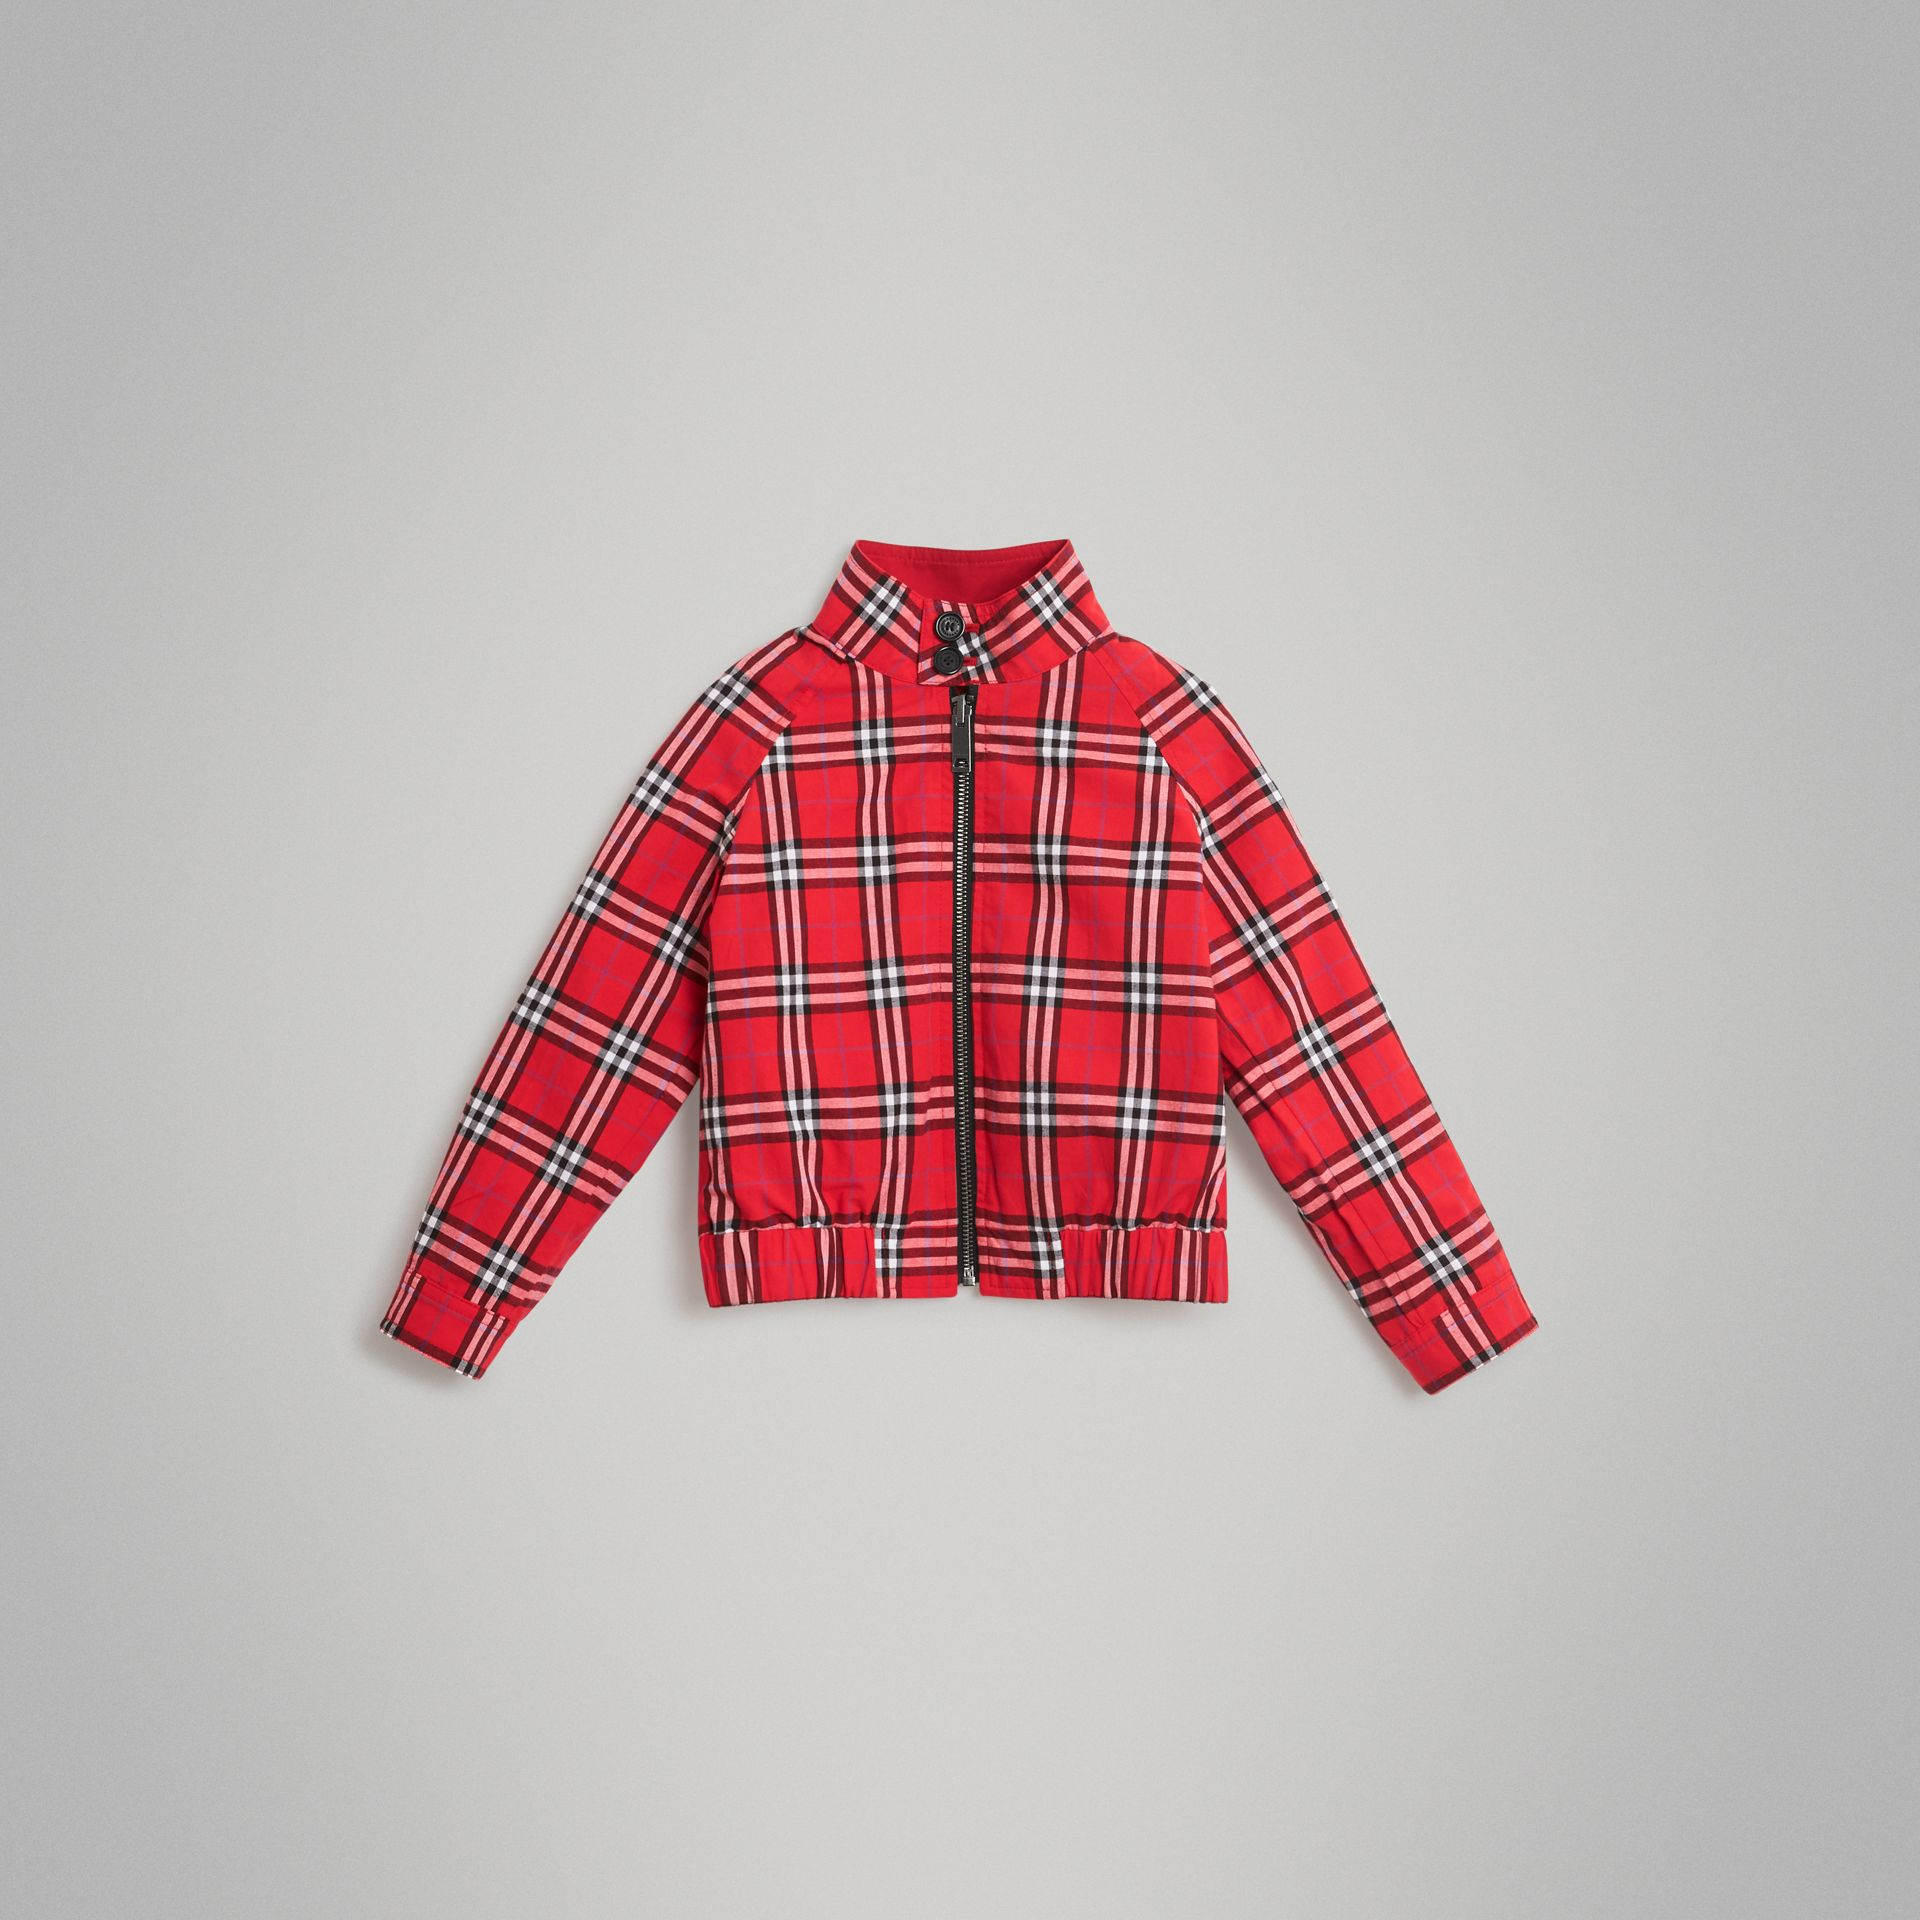 Reversible Check Cotton Harrington Jacket in Bright Red | Burberry United Kingdom - gallery image 5